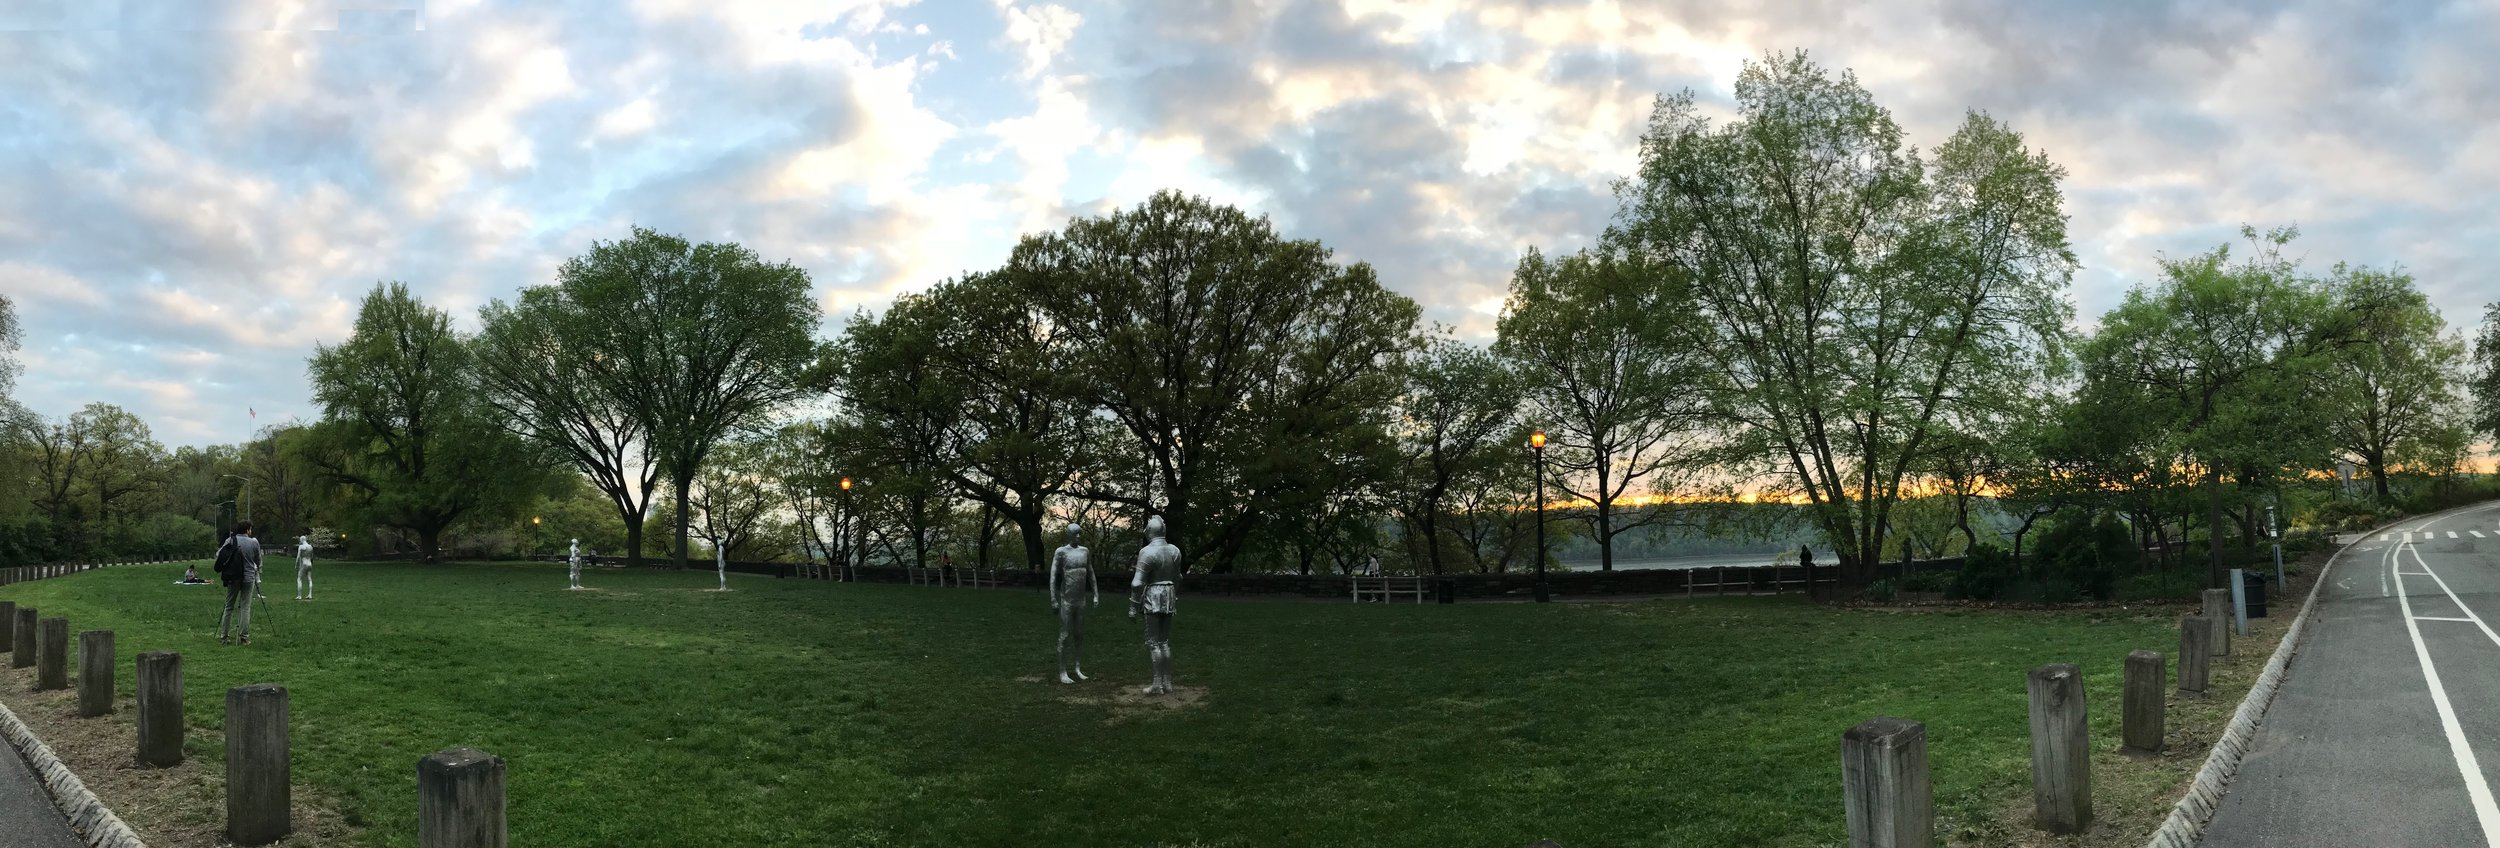 ARMORS at sunset (reference pano by Molly Krause).JPG